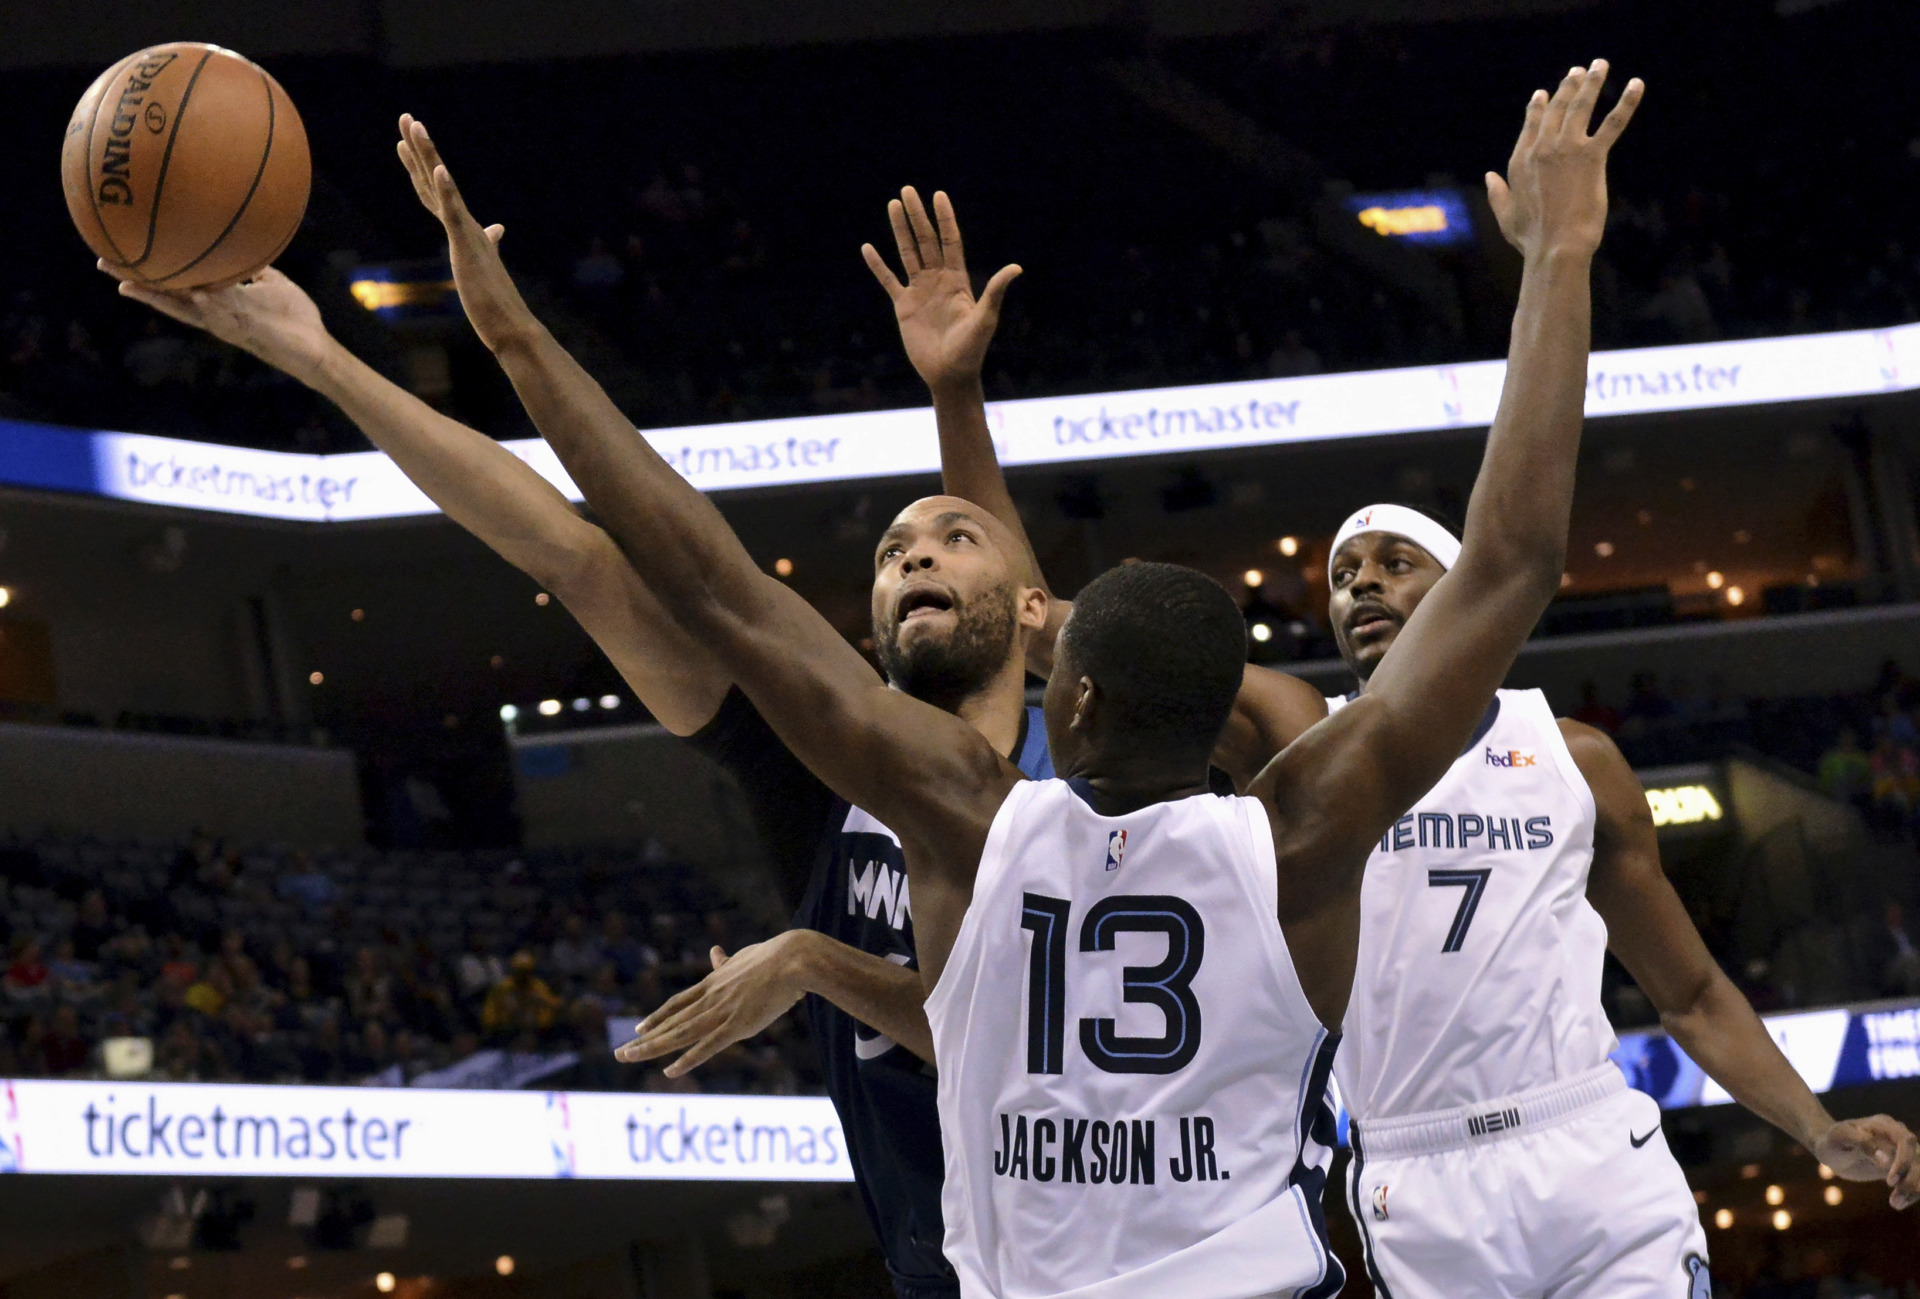 <span><strong>Minnesota Timberwolves forward Taj Gibson shoots against Memphis Grizzlies forwards Jaren Jackson Jr. (13) and Justin Holiday (7) Tuesday, Feb. 5, 2019, in Memphis. Holiday's last-second free throws helped the Grizzlies eke out a win, 108-106.</strong>&nbsp;(AP Photo/Brandon Dill)</span>